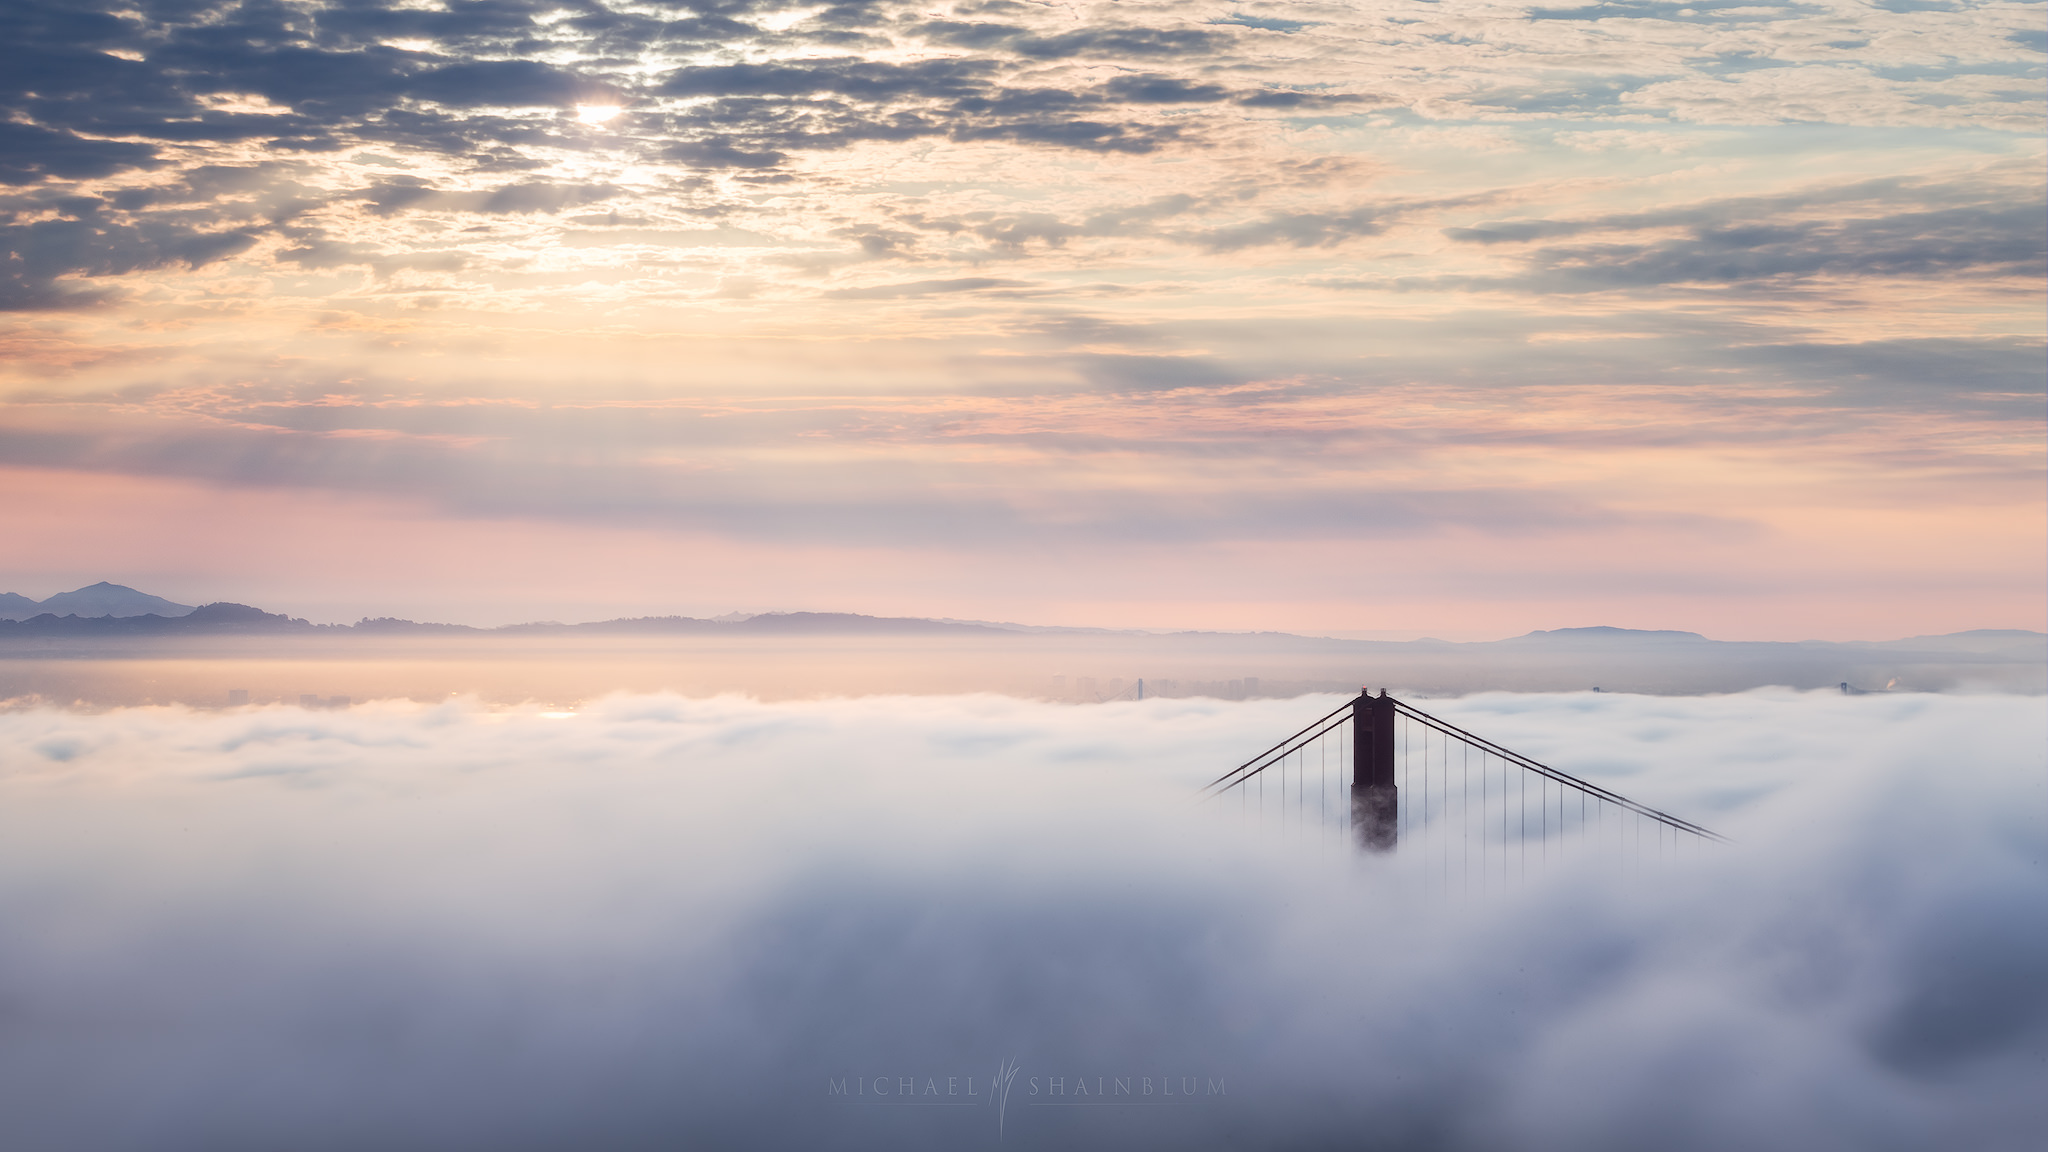 Golden Gate Bridge photography, San Francisco